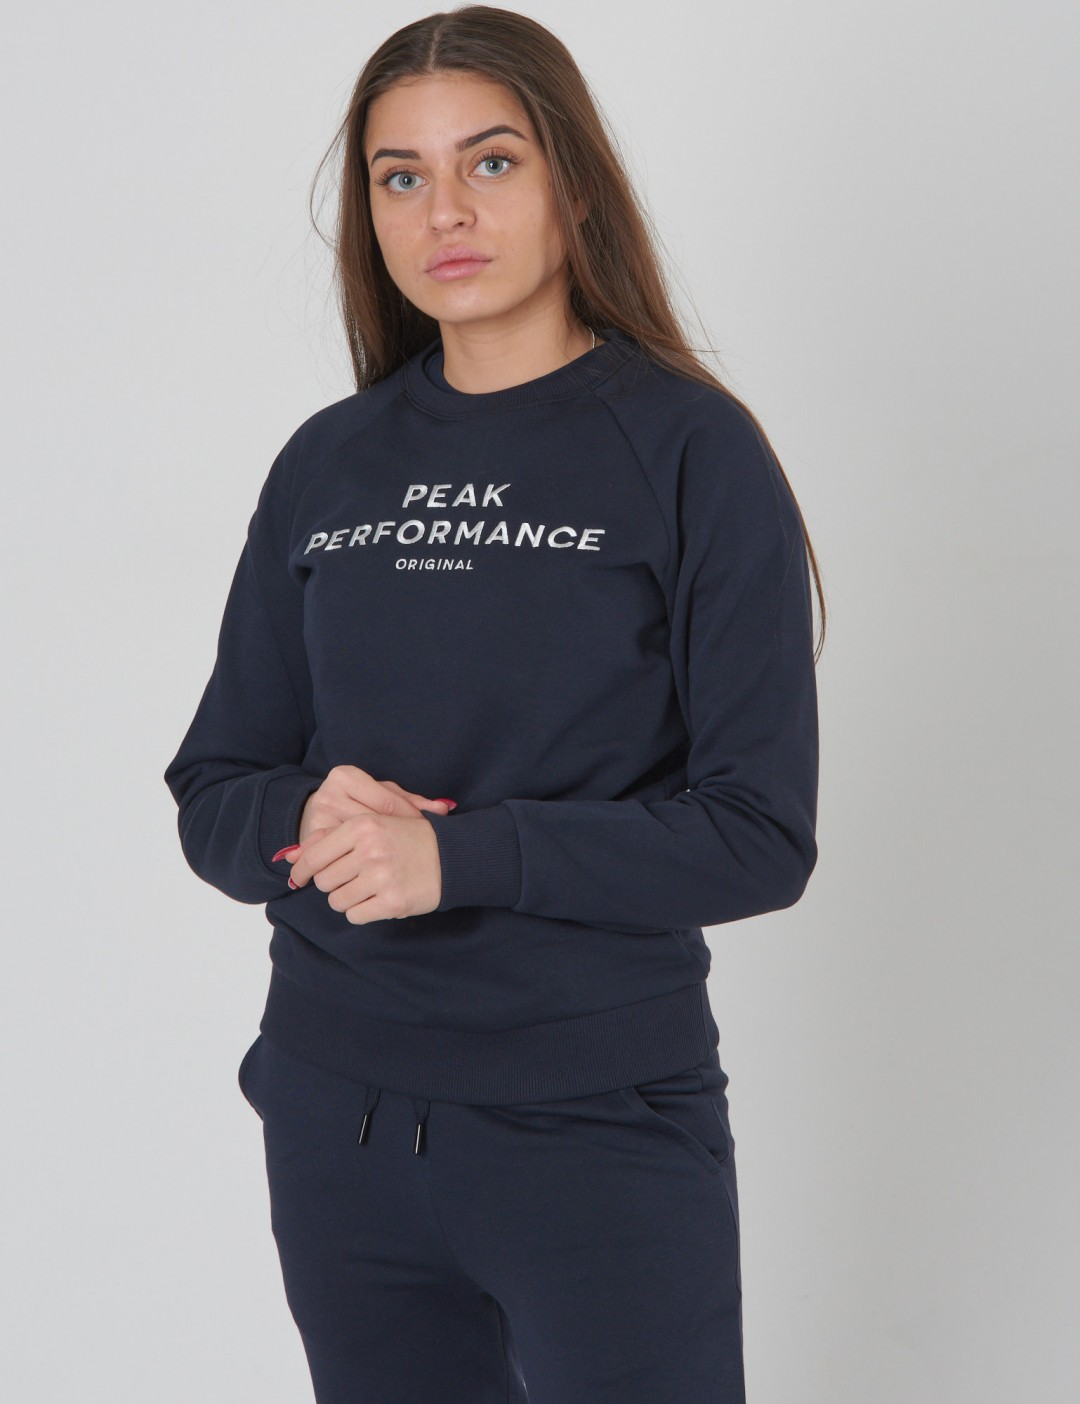 c0db9946 Peak Performance - JR ORIGC · Peak Performance - JR ORIGC ...